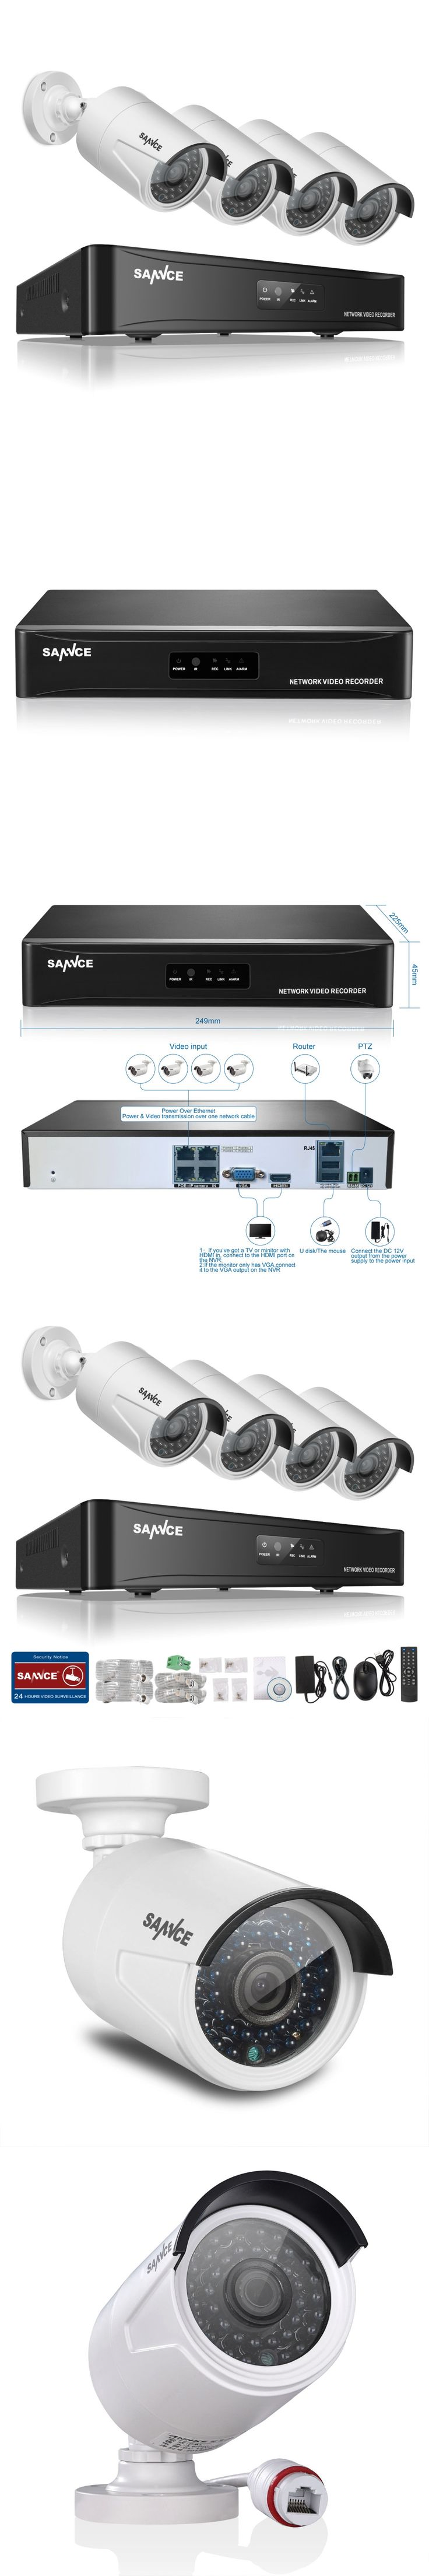 SANNCE 4CH NVR 960P IP Network PoE Video Record 1.3M IR Outdoor CCTV Security Camera System Home video Surveillance kit RU Stock